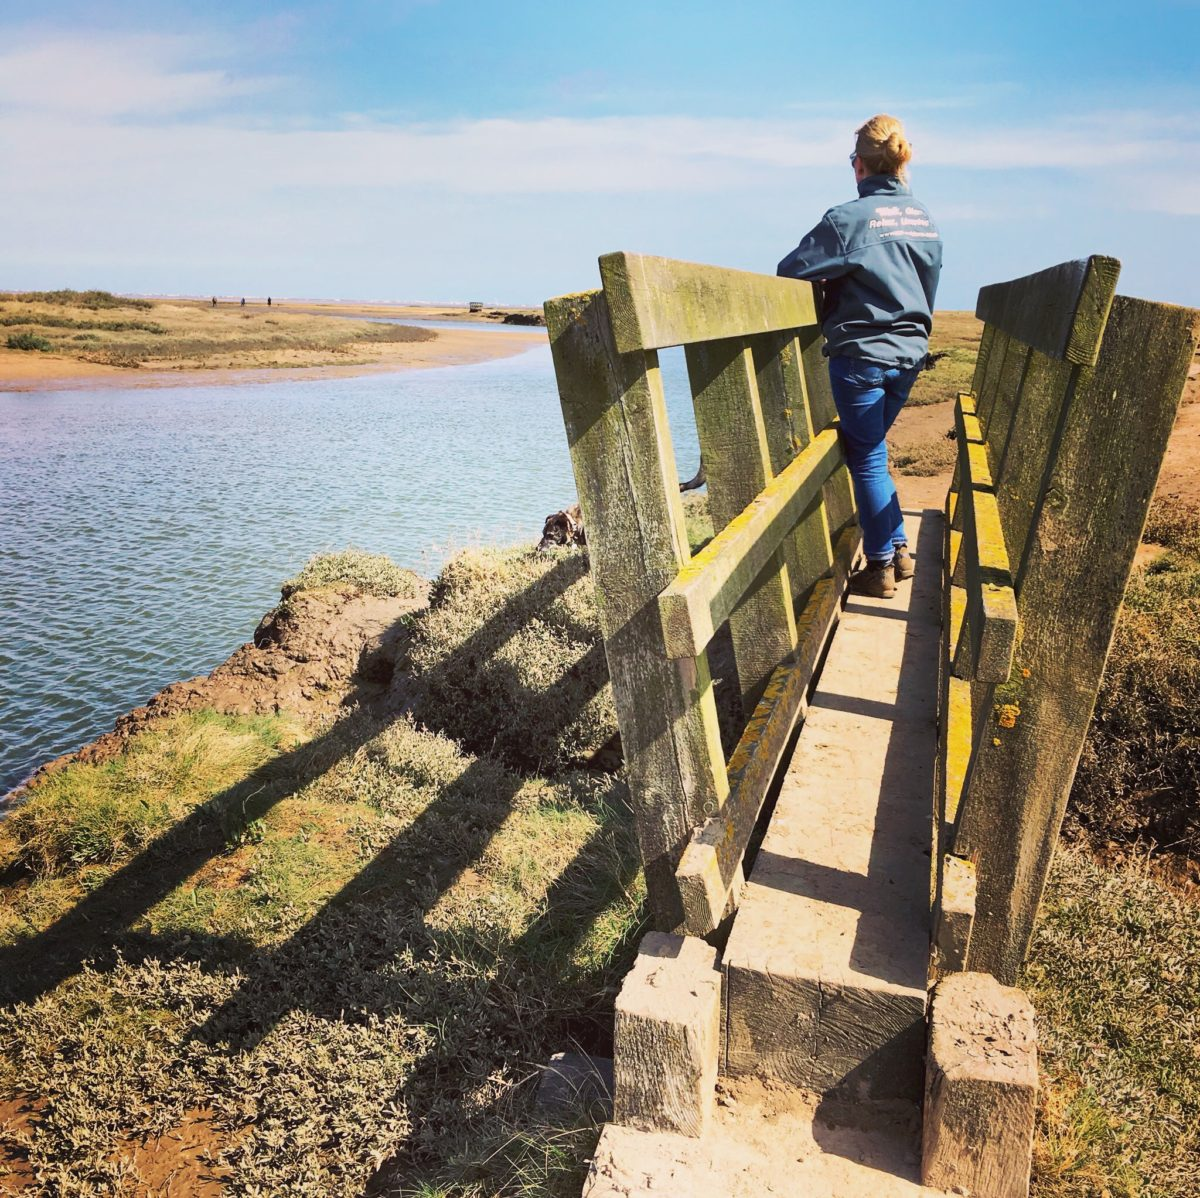 A time to stop and reflect on Stiffkey bridges